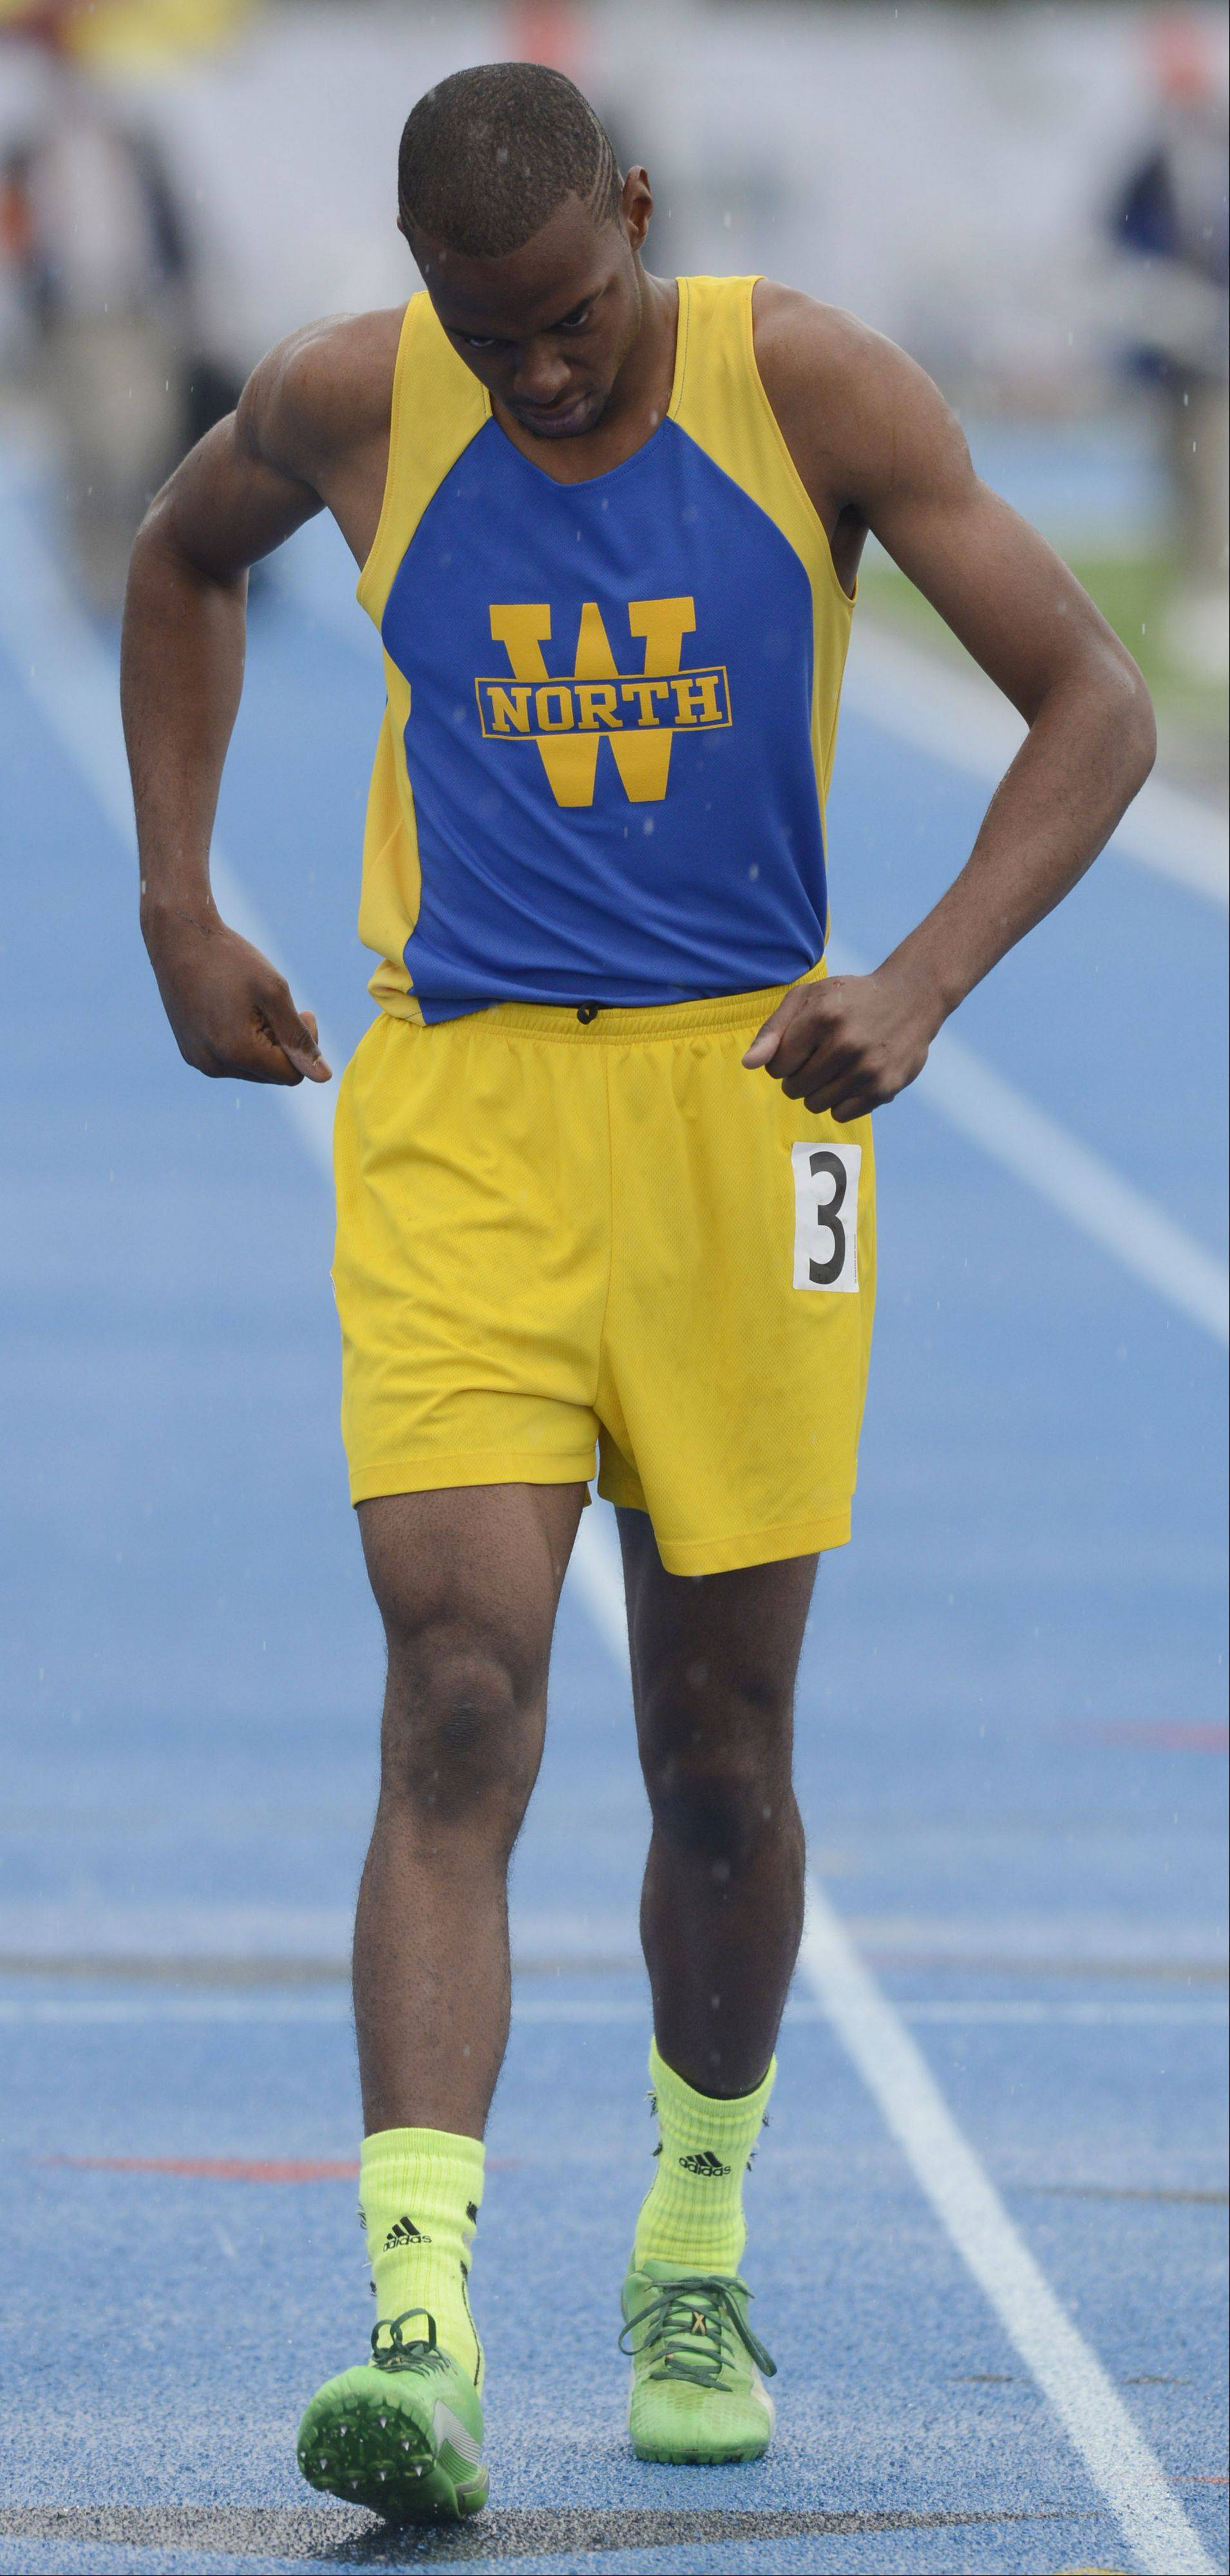 Despite being injured prior to the race, Wheaton North's Zach Gordon walks to the finish line in order to earn his medal in the 100-meter dash during the boys state track finals in Charleston Saturday.